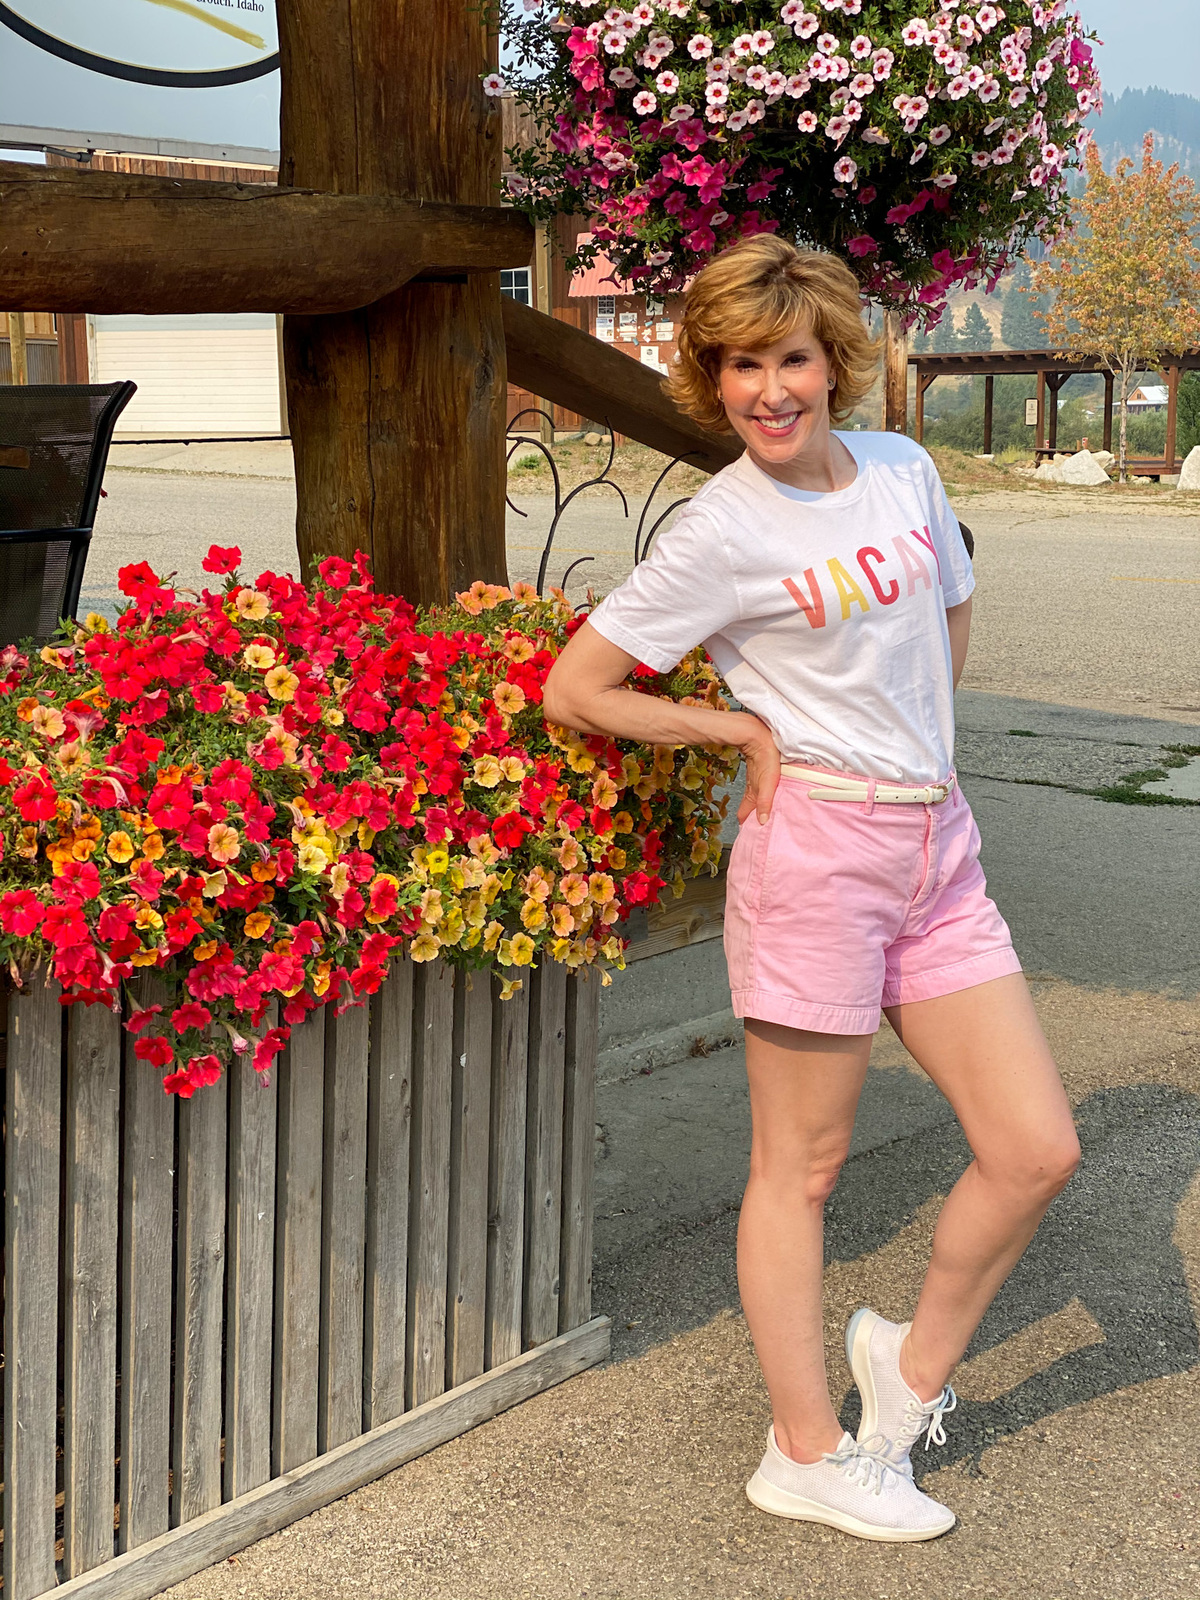 woman wearing vacay tee and pink shorts standing by flowers